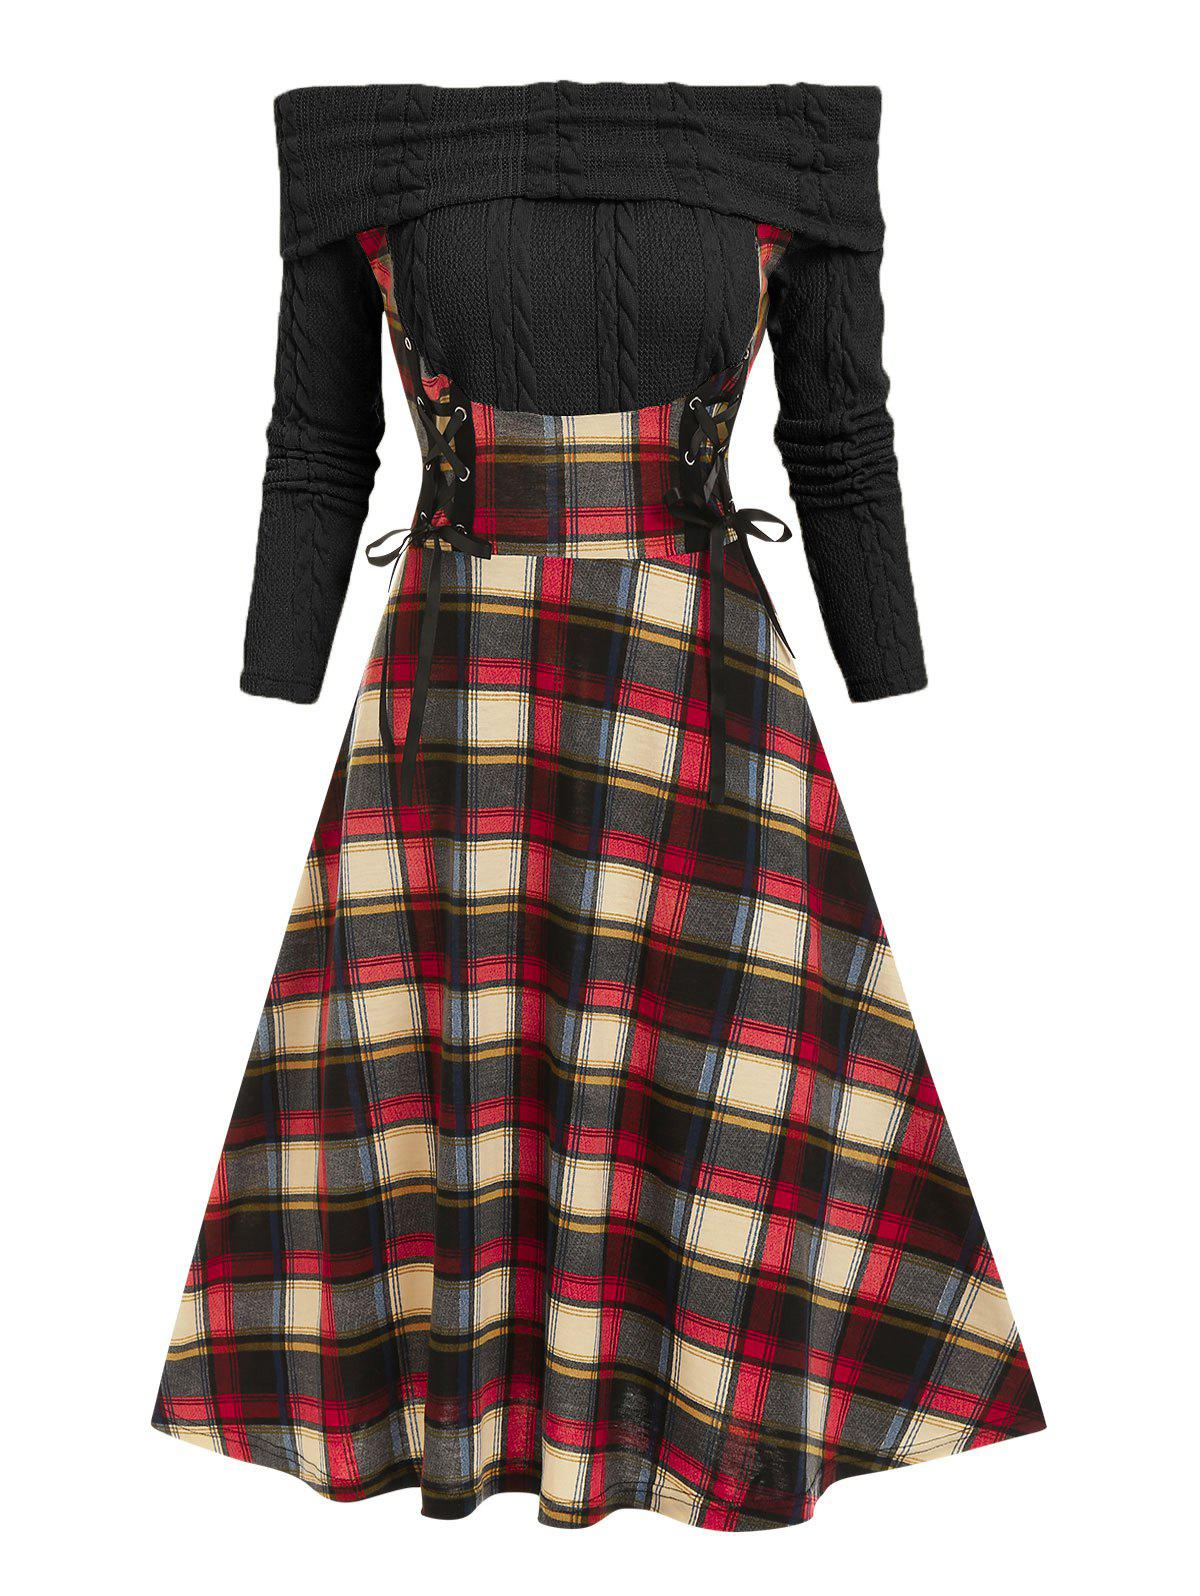 Affordable Off The Shoulder Lace Up Plaid  2 in 1 Dress